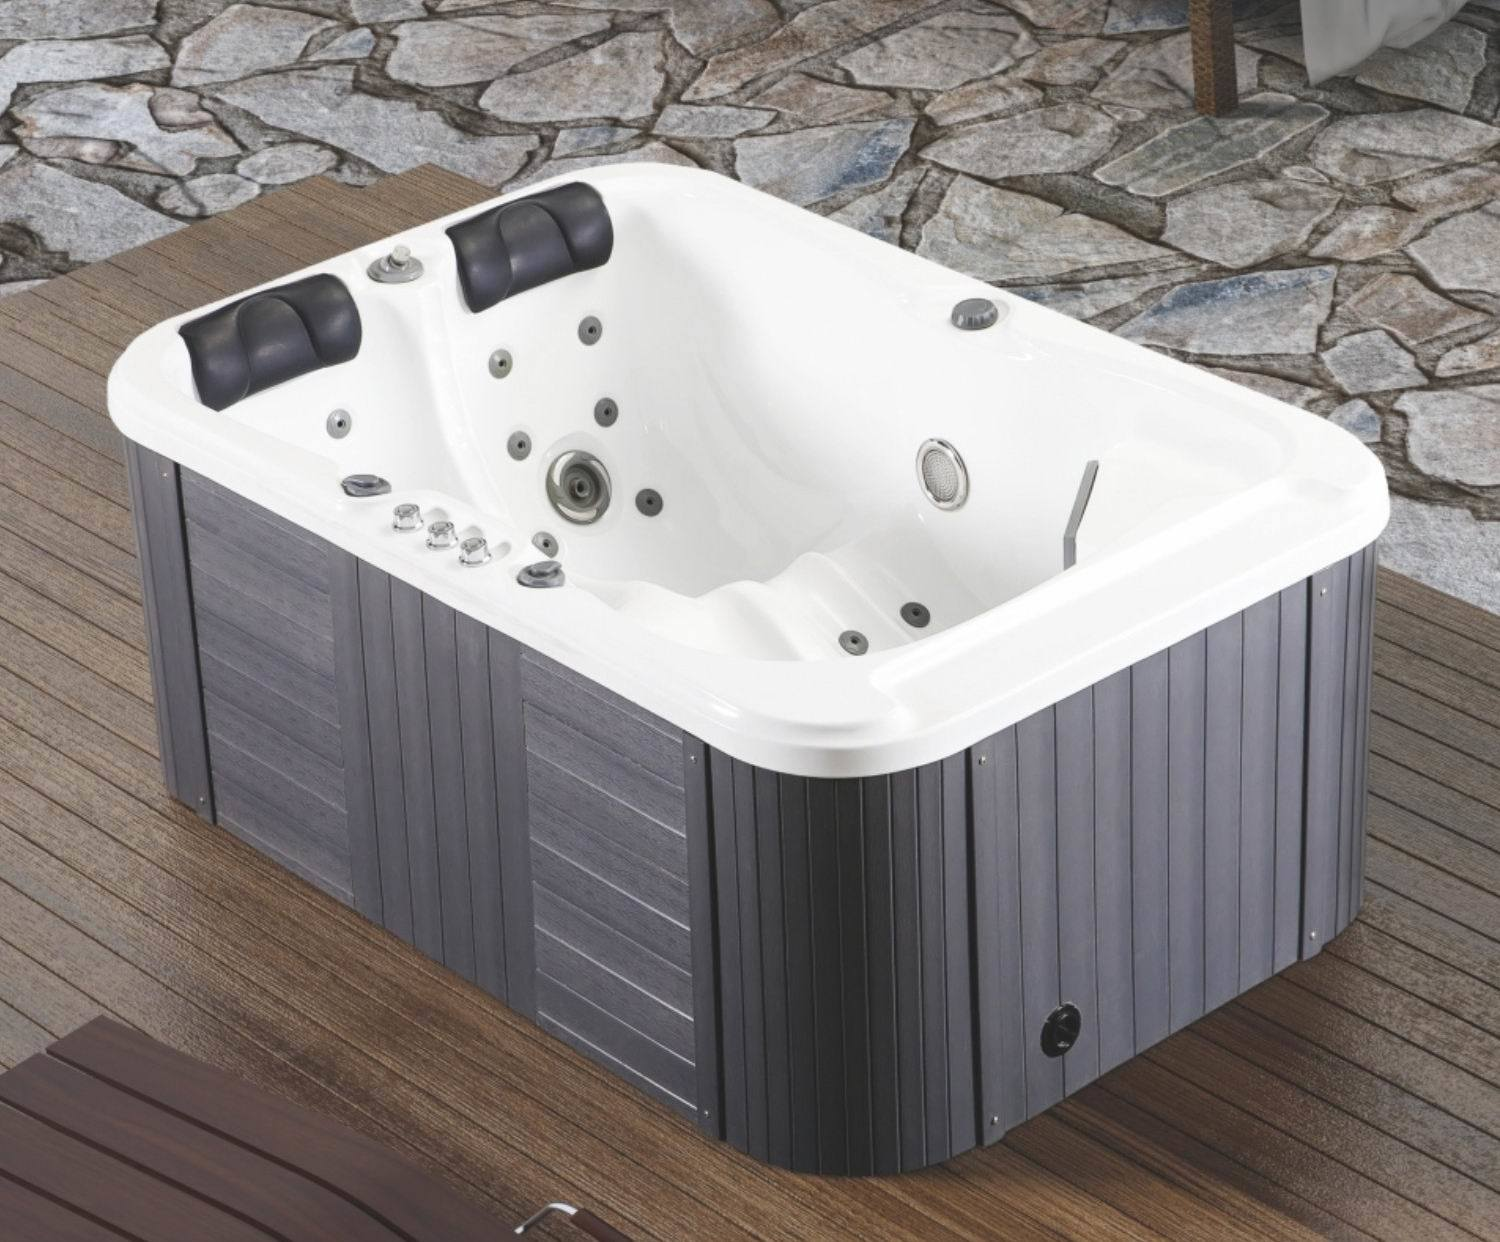 HD wallpapers outdoor jacuzzi sizes